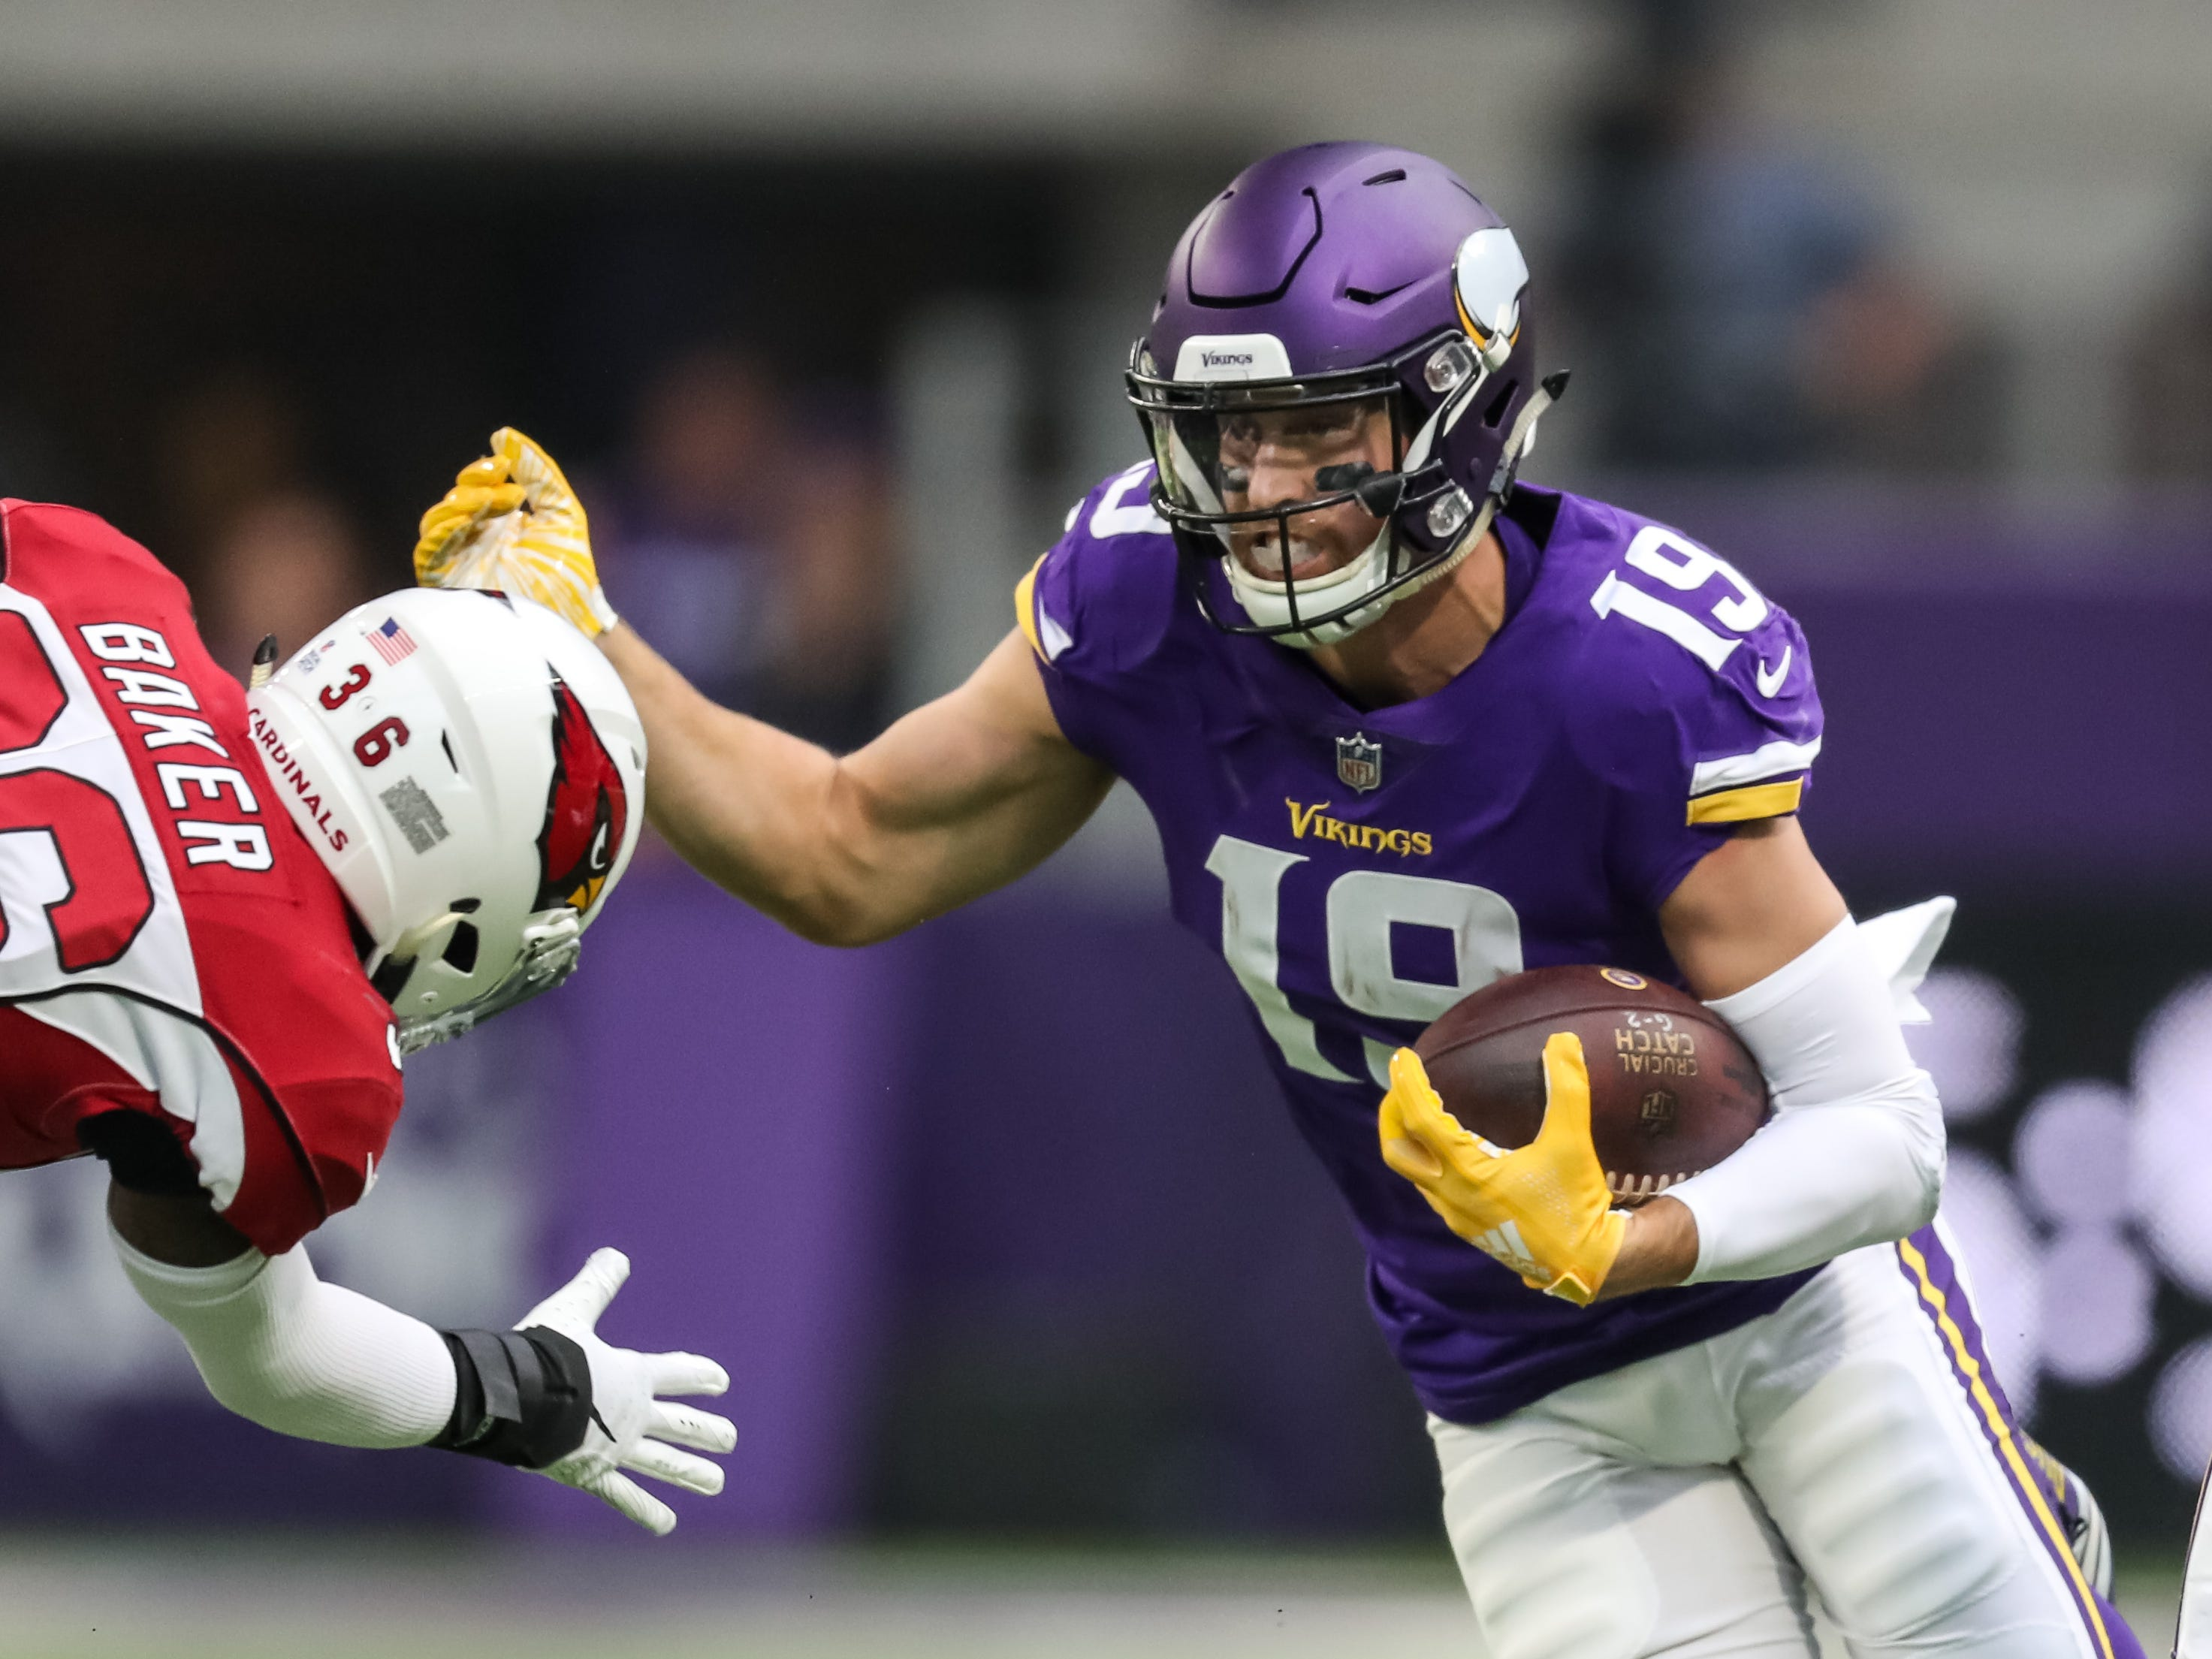 Oct 14, 2018; Minneapolis, MN, USA; Minnesota Vikings wide receiver Adam Thielen (19) carries the ball during the first quarter against the Arizona Cardinals at U.S. Bank Stadium. Mandatory Credit: Brace Hemmelgarn-USA TODAY Sports